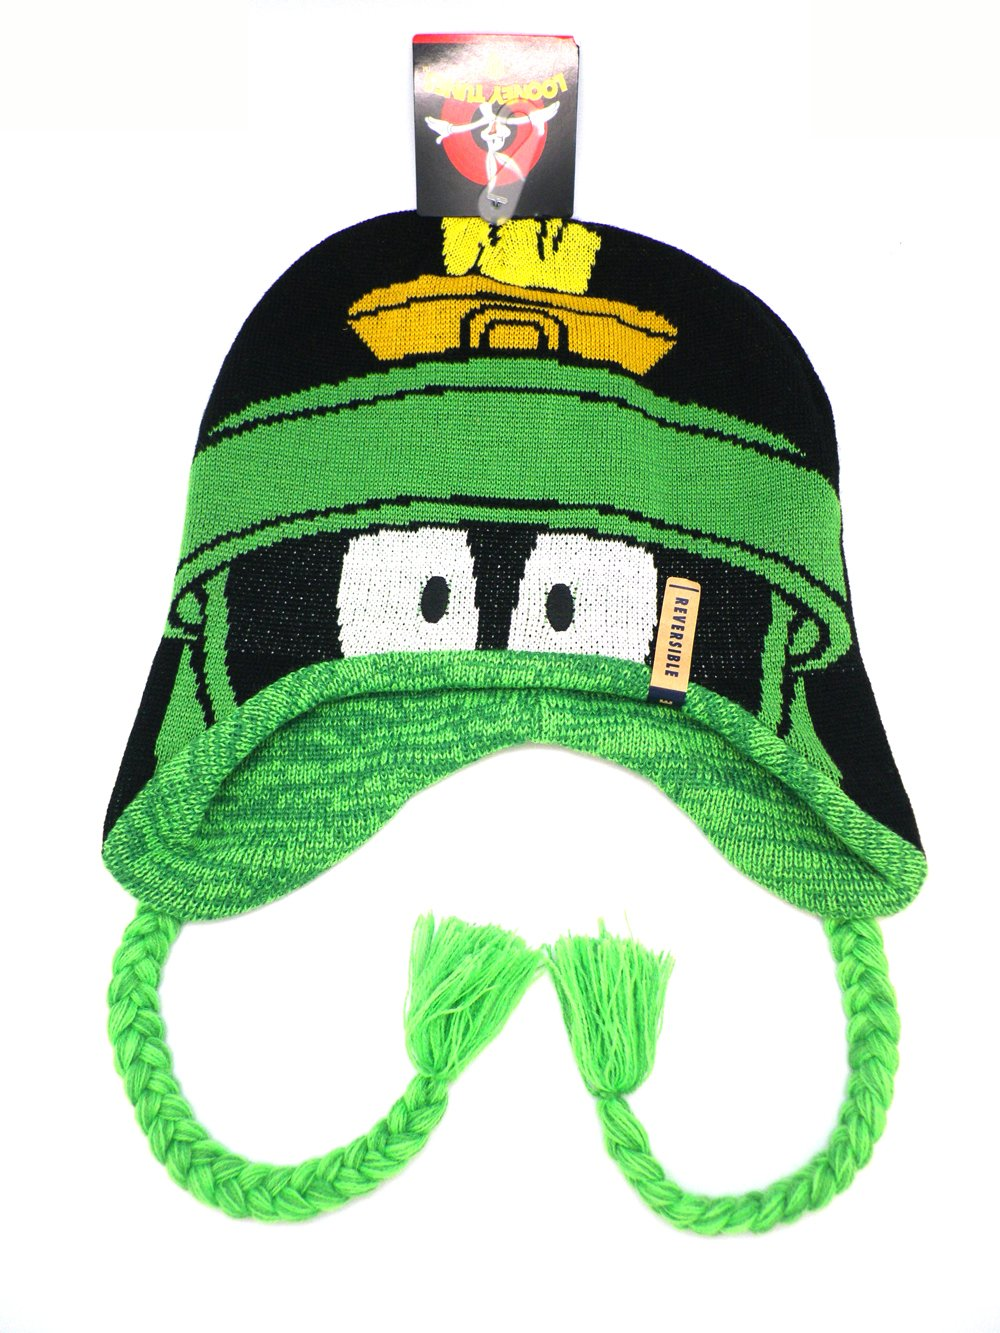 Reversable Marvin the Martian Peruvian Beanie winter costume hat marvin gaye marvin gaye how sweet it is to be loved by you